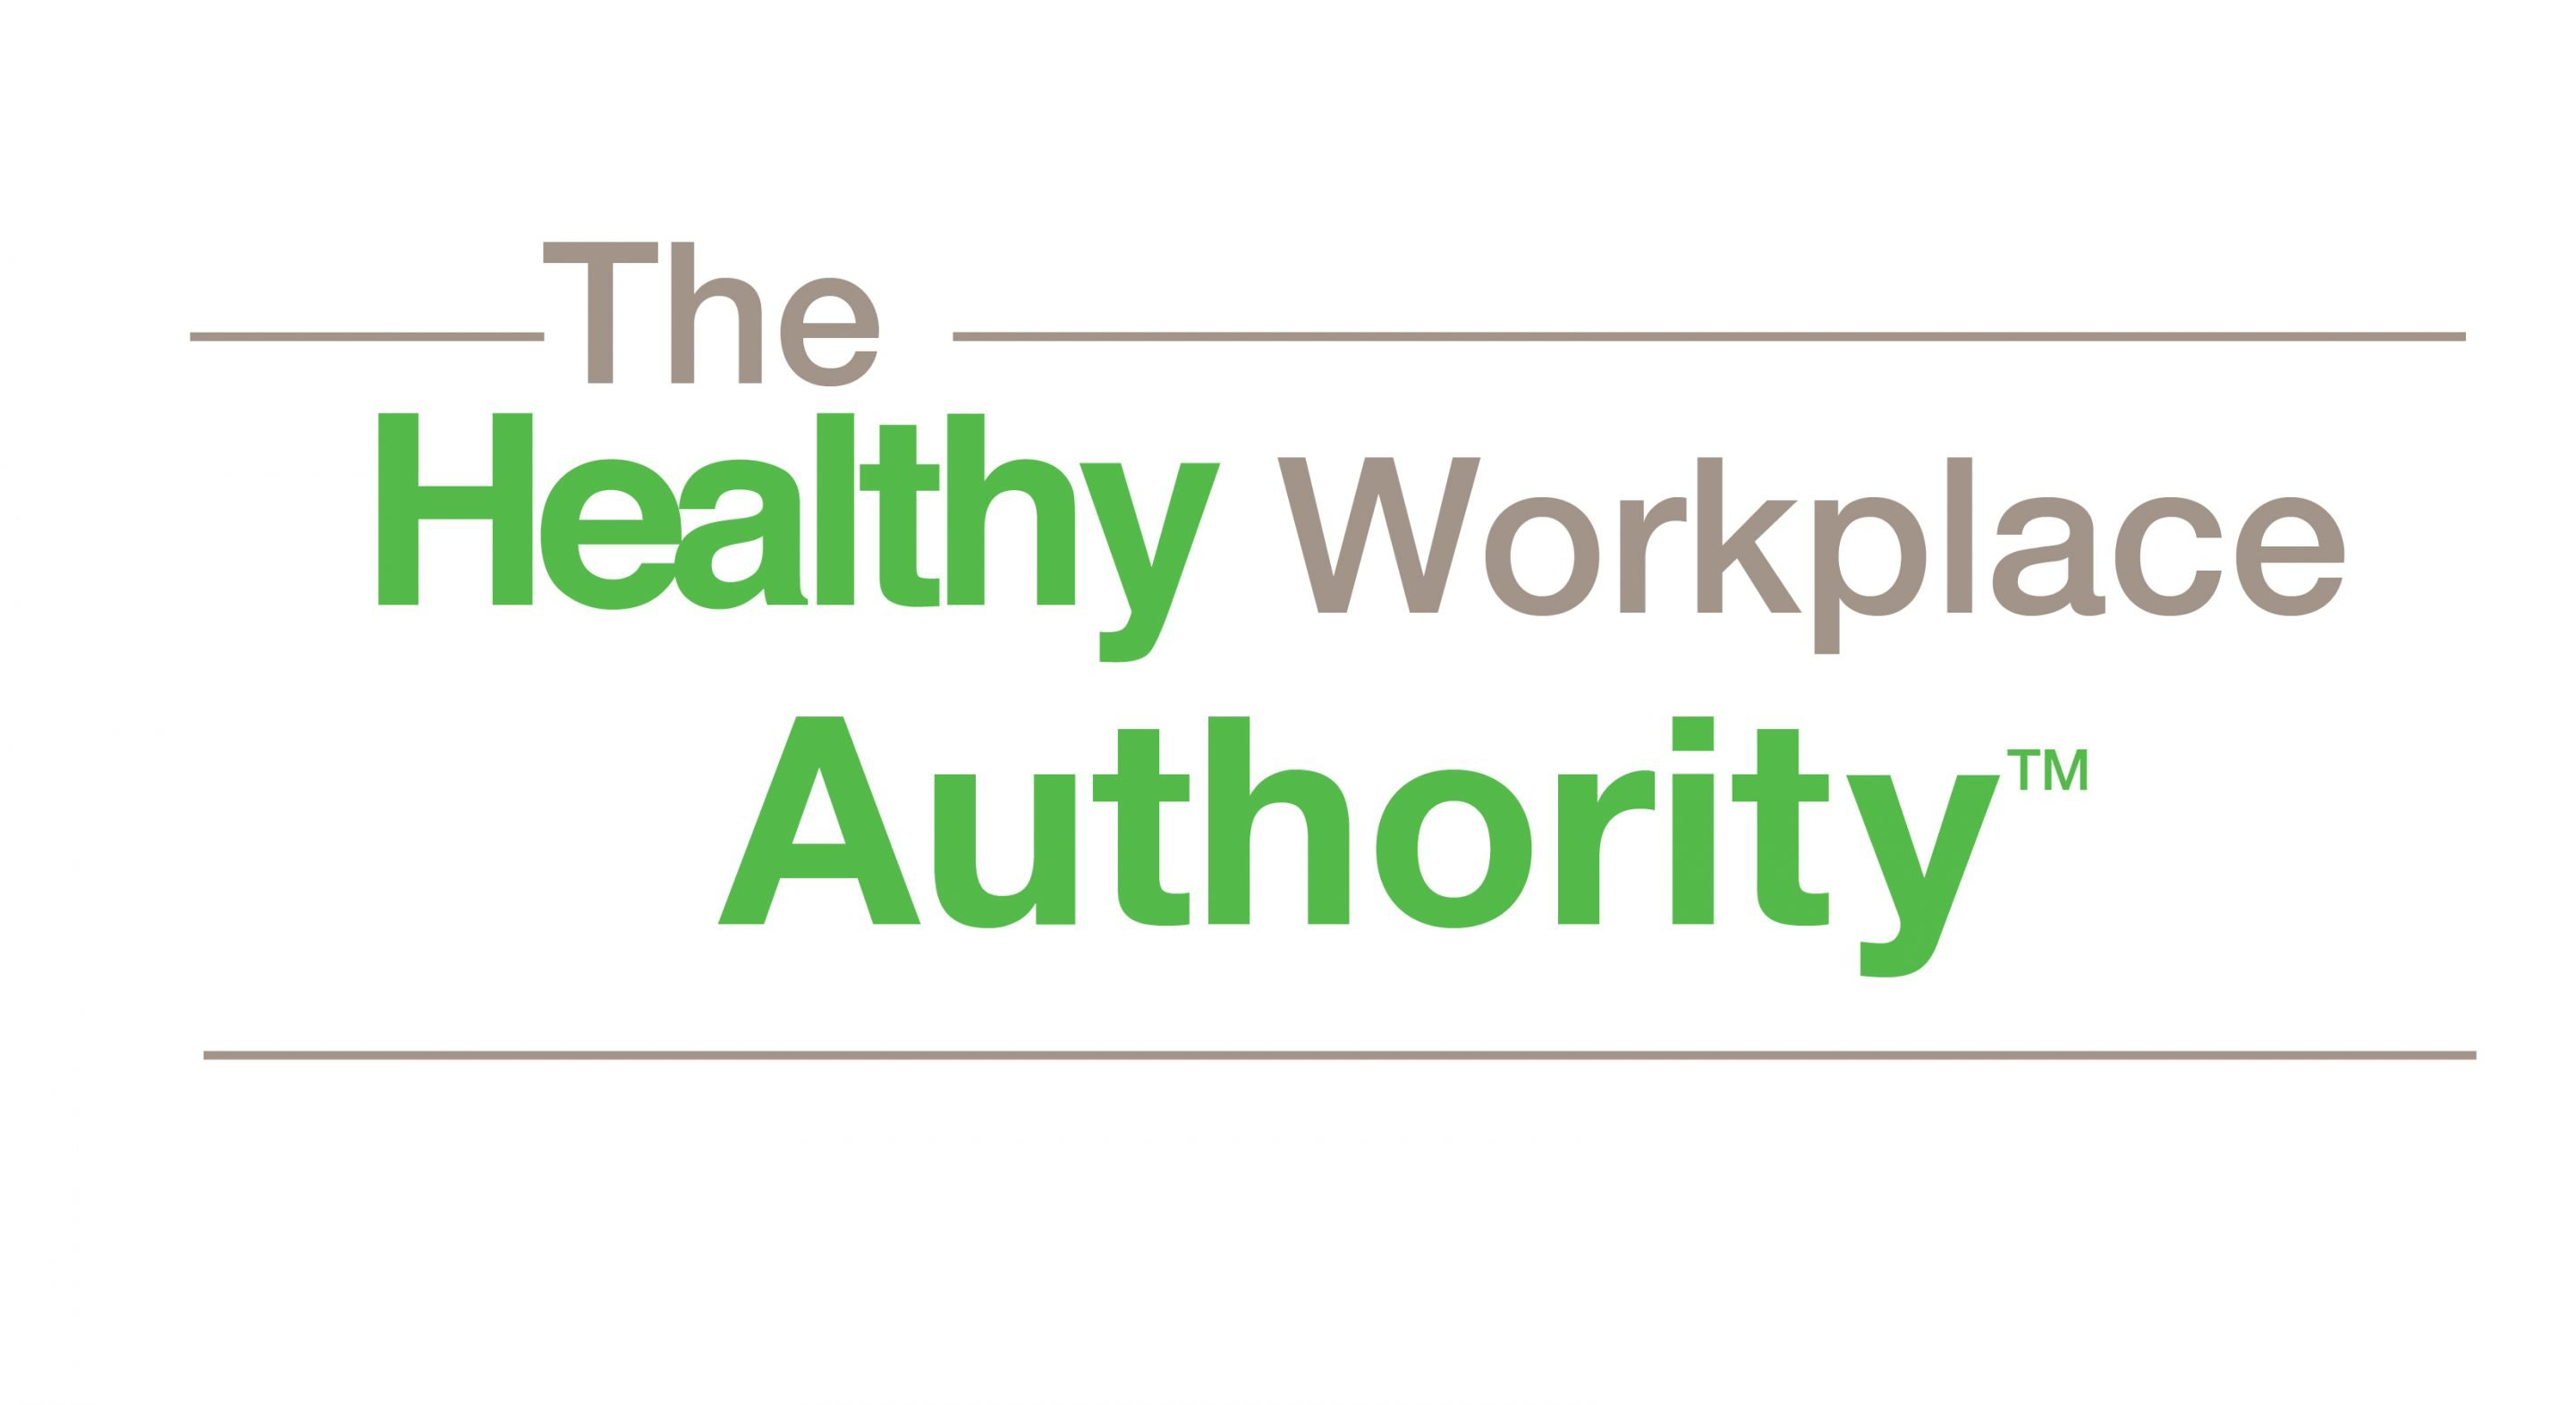 The healthy workplace experts